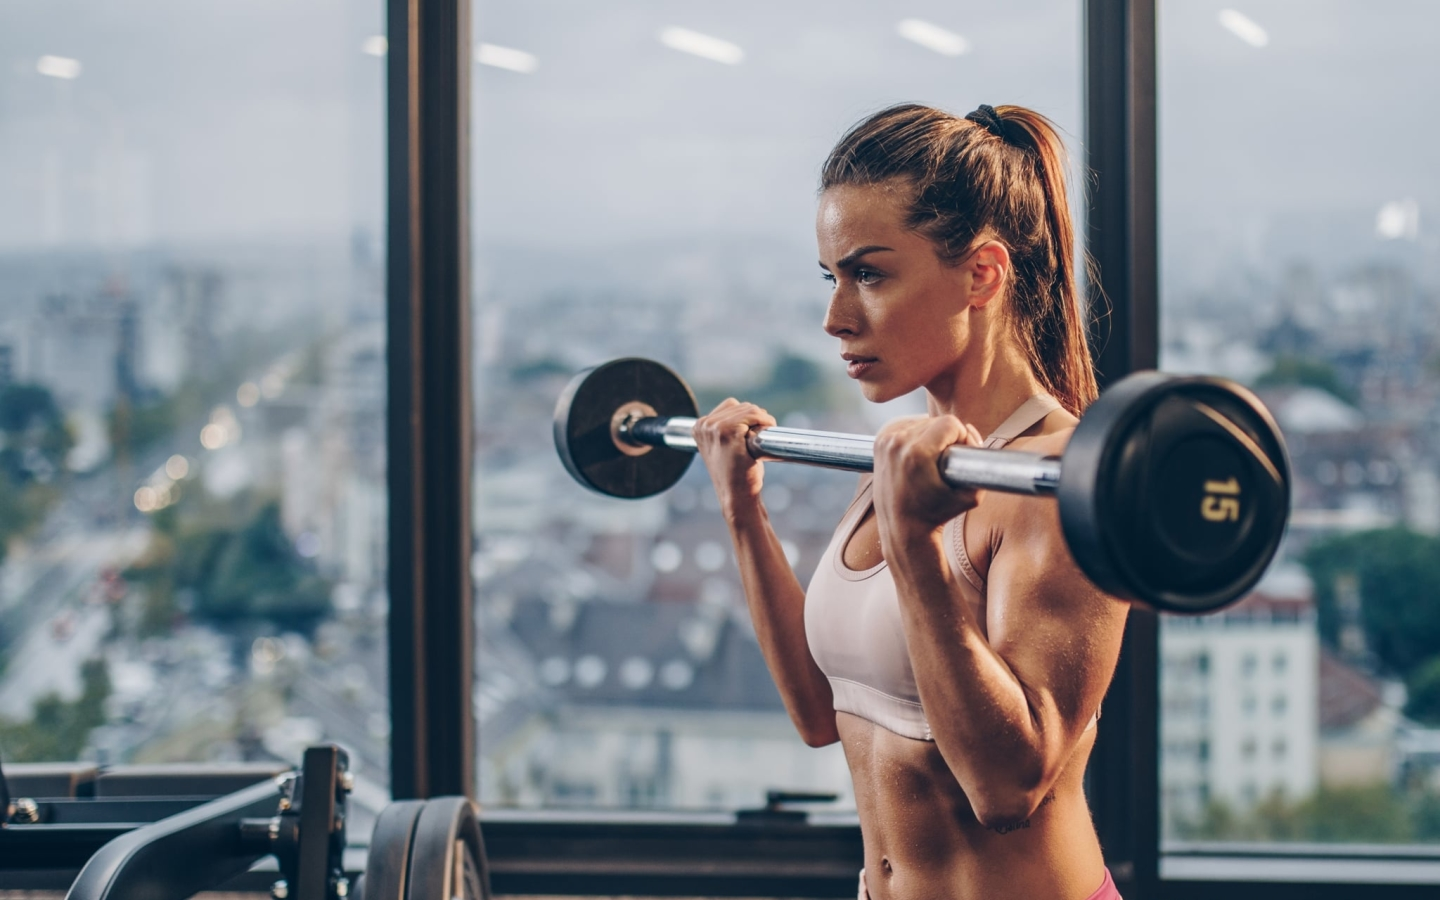 Girl Lifting Bar Wallpaper in 1440x900 Resolution